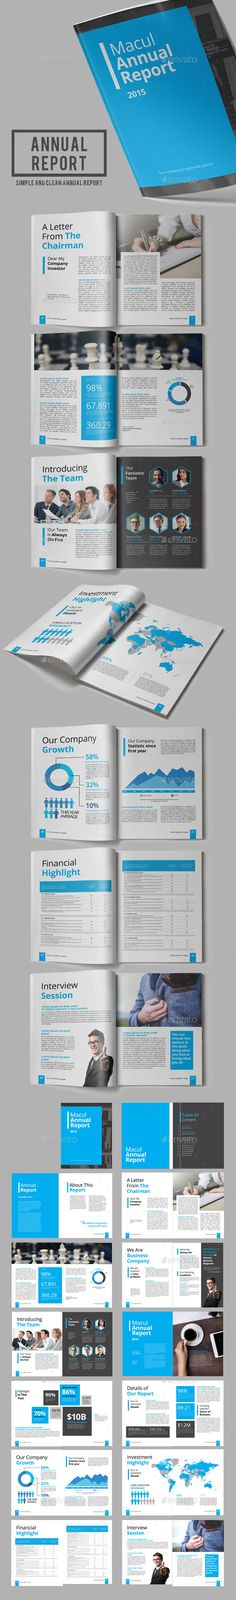 Macul Annual Report Template InDesign INDD #design Download: http://graphicriver.net/item/macul-annual-report/13628647?ref=ksioks